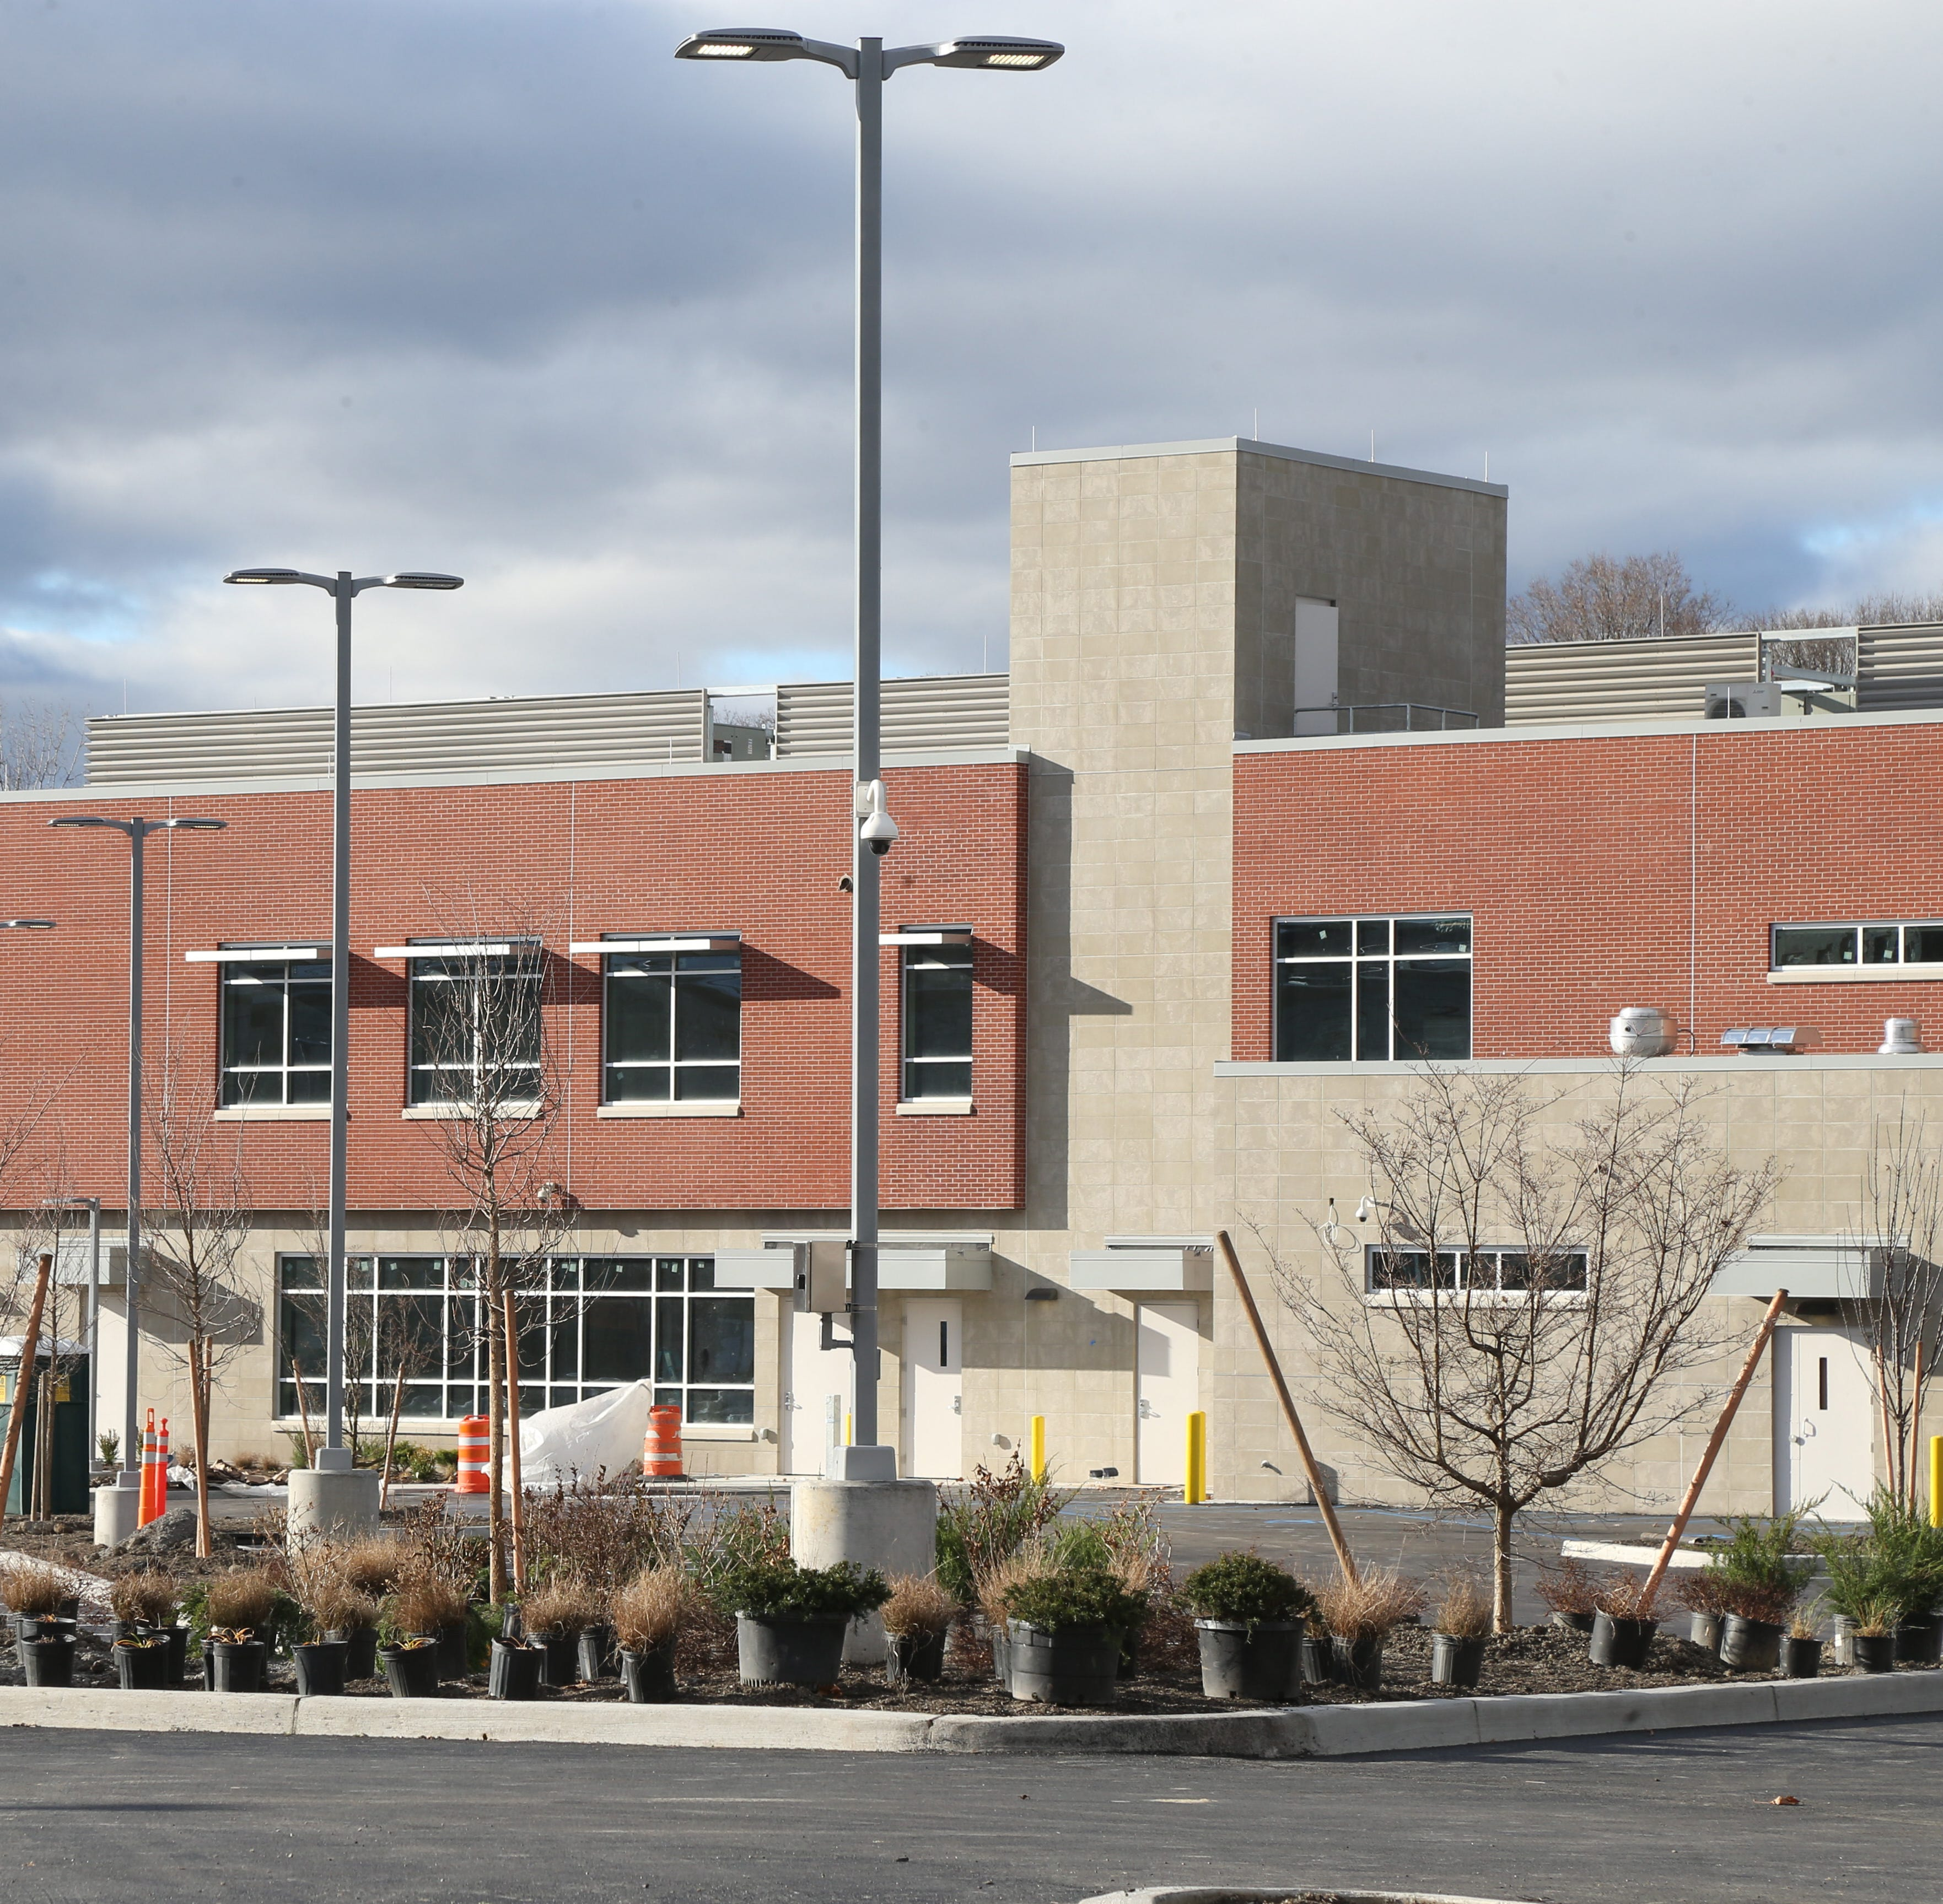 Dutchess jail can use size to its advantage: Editorial